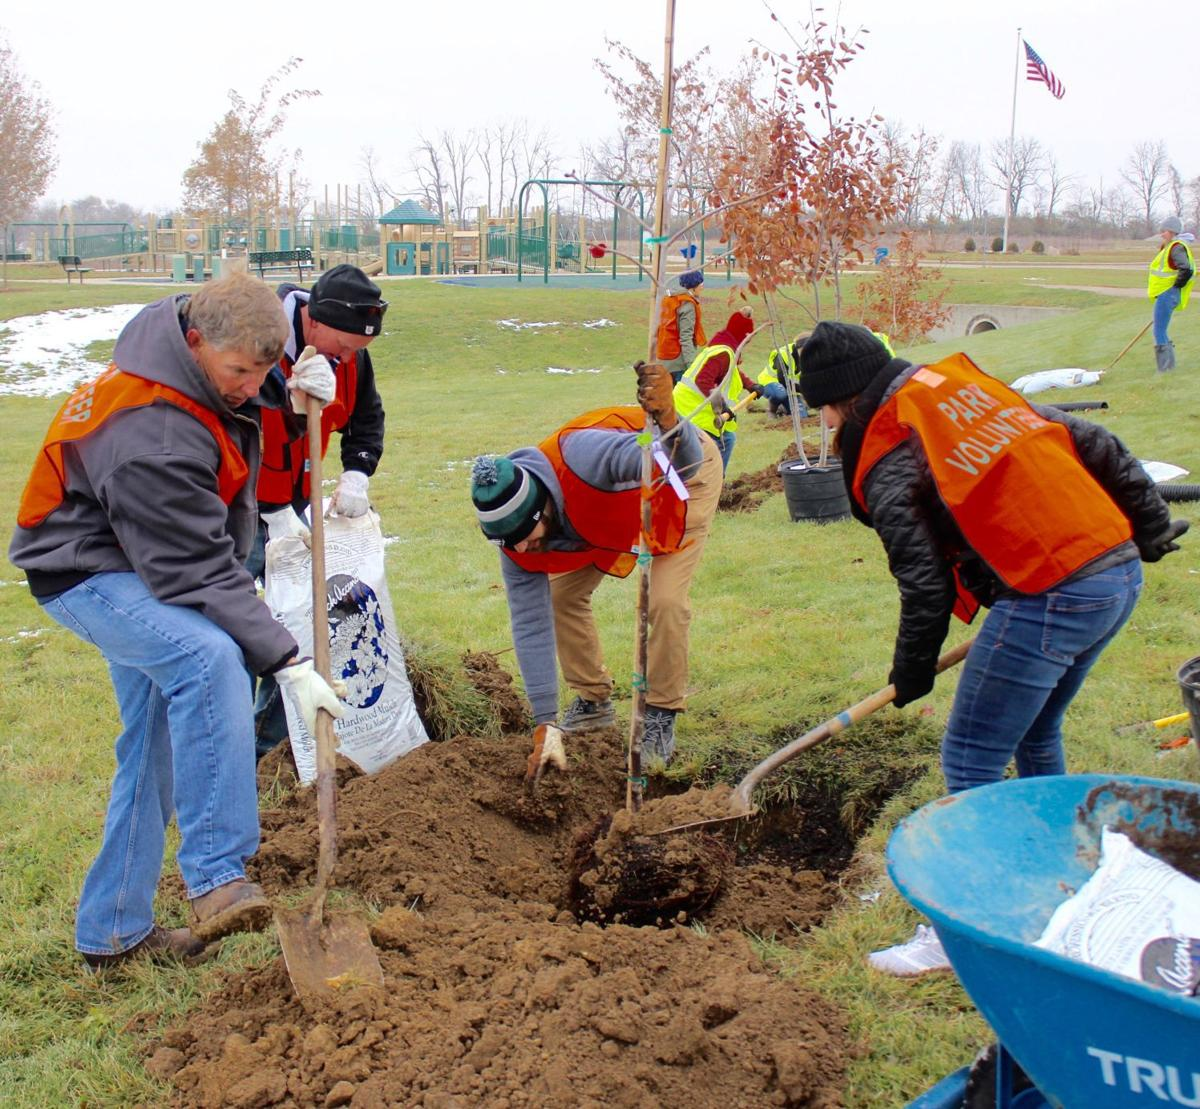 Volunteers come together to plant trees